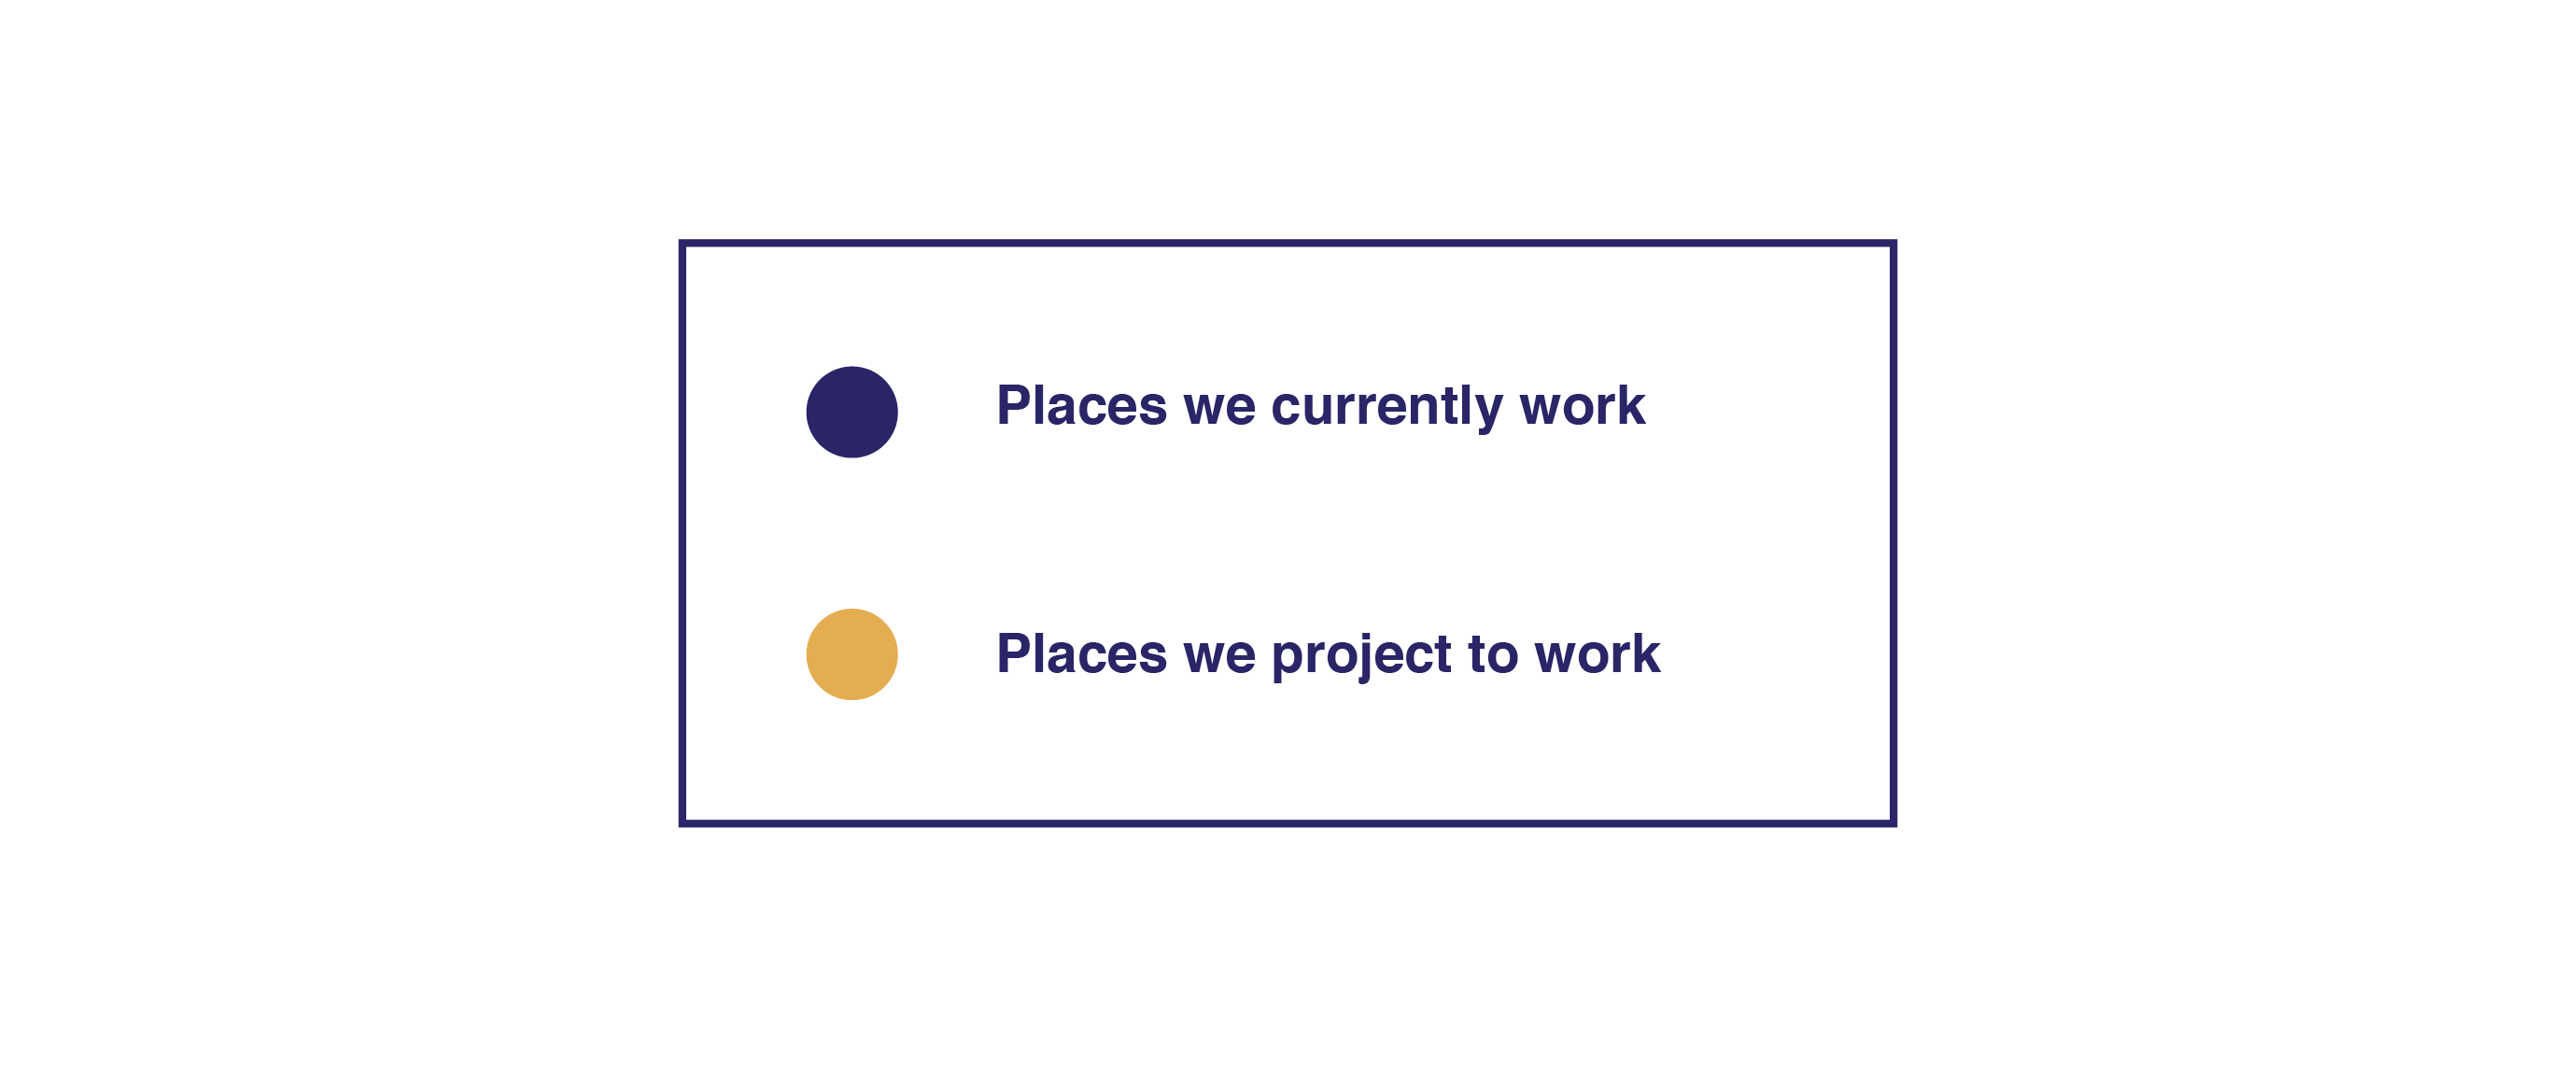 A key showing that a purple dot means GLDev is working in the city and a gold dot means GLDev projects to work in that city.